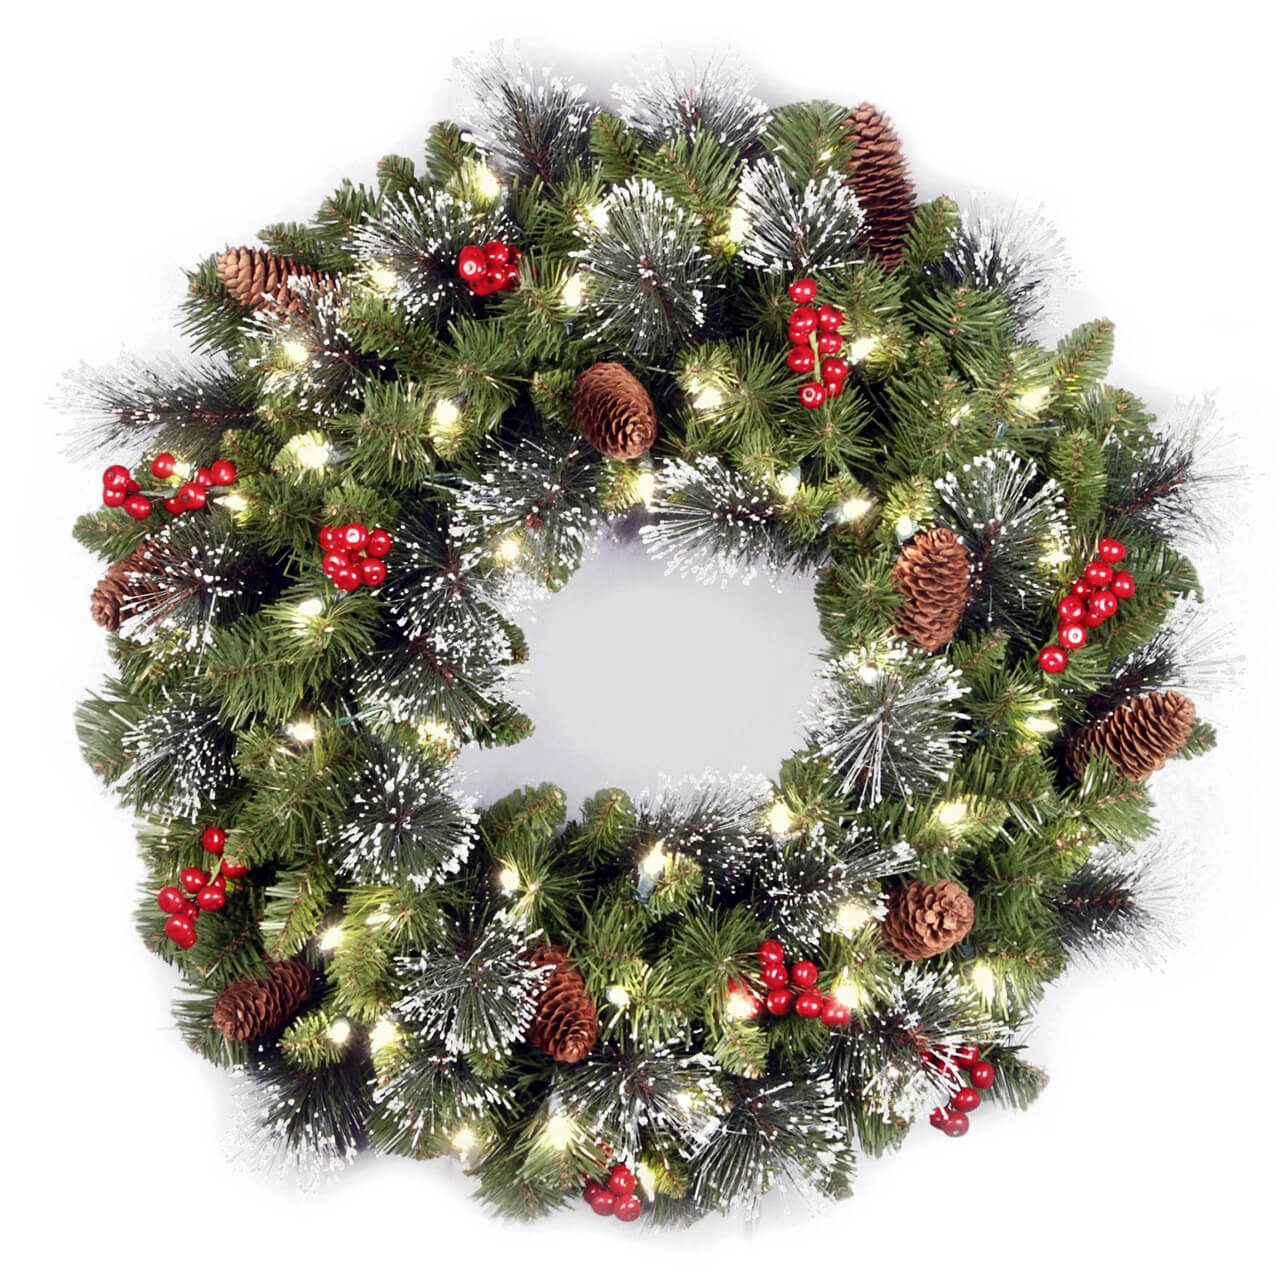 5 a really resplendent wreath - Christmas Tree Accessories